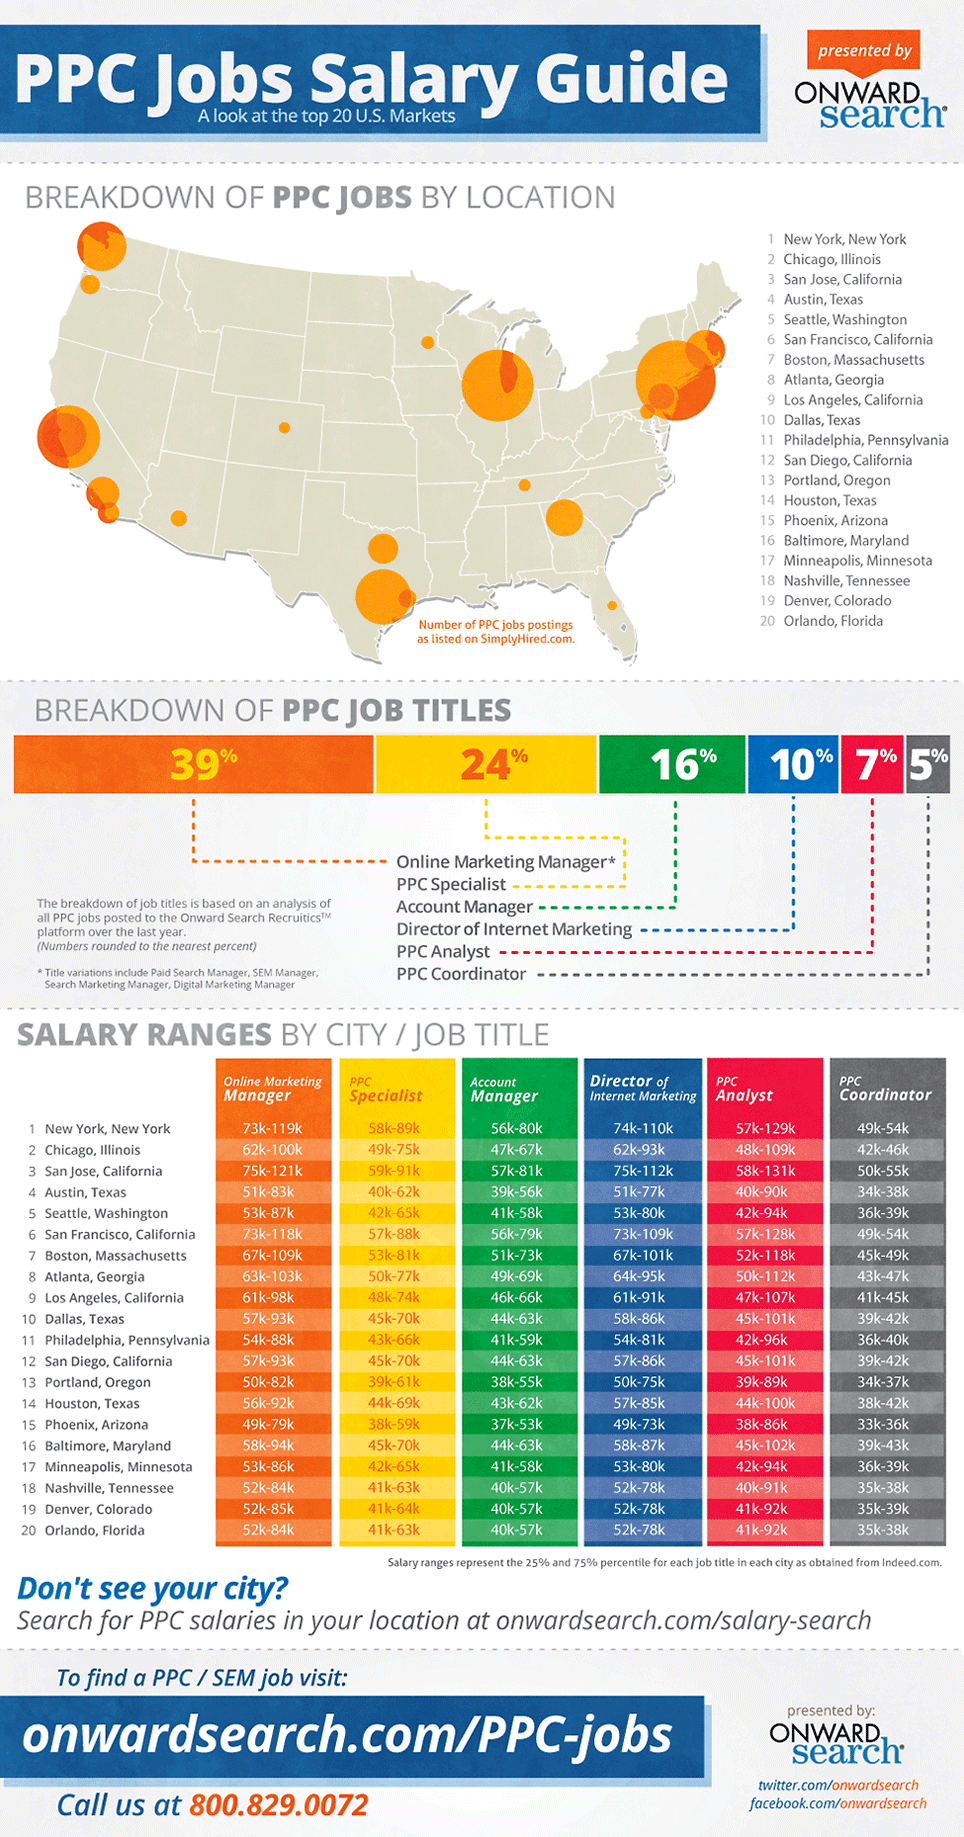 PPC Jobs Salary Guide